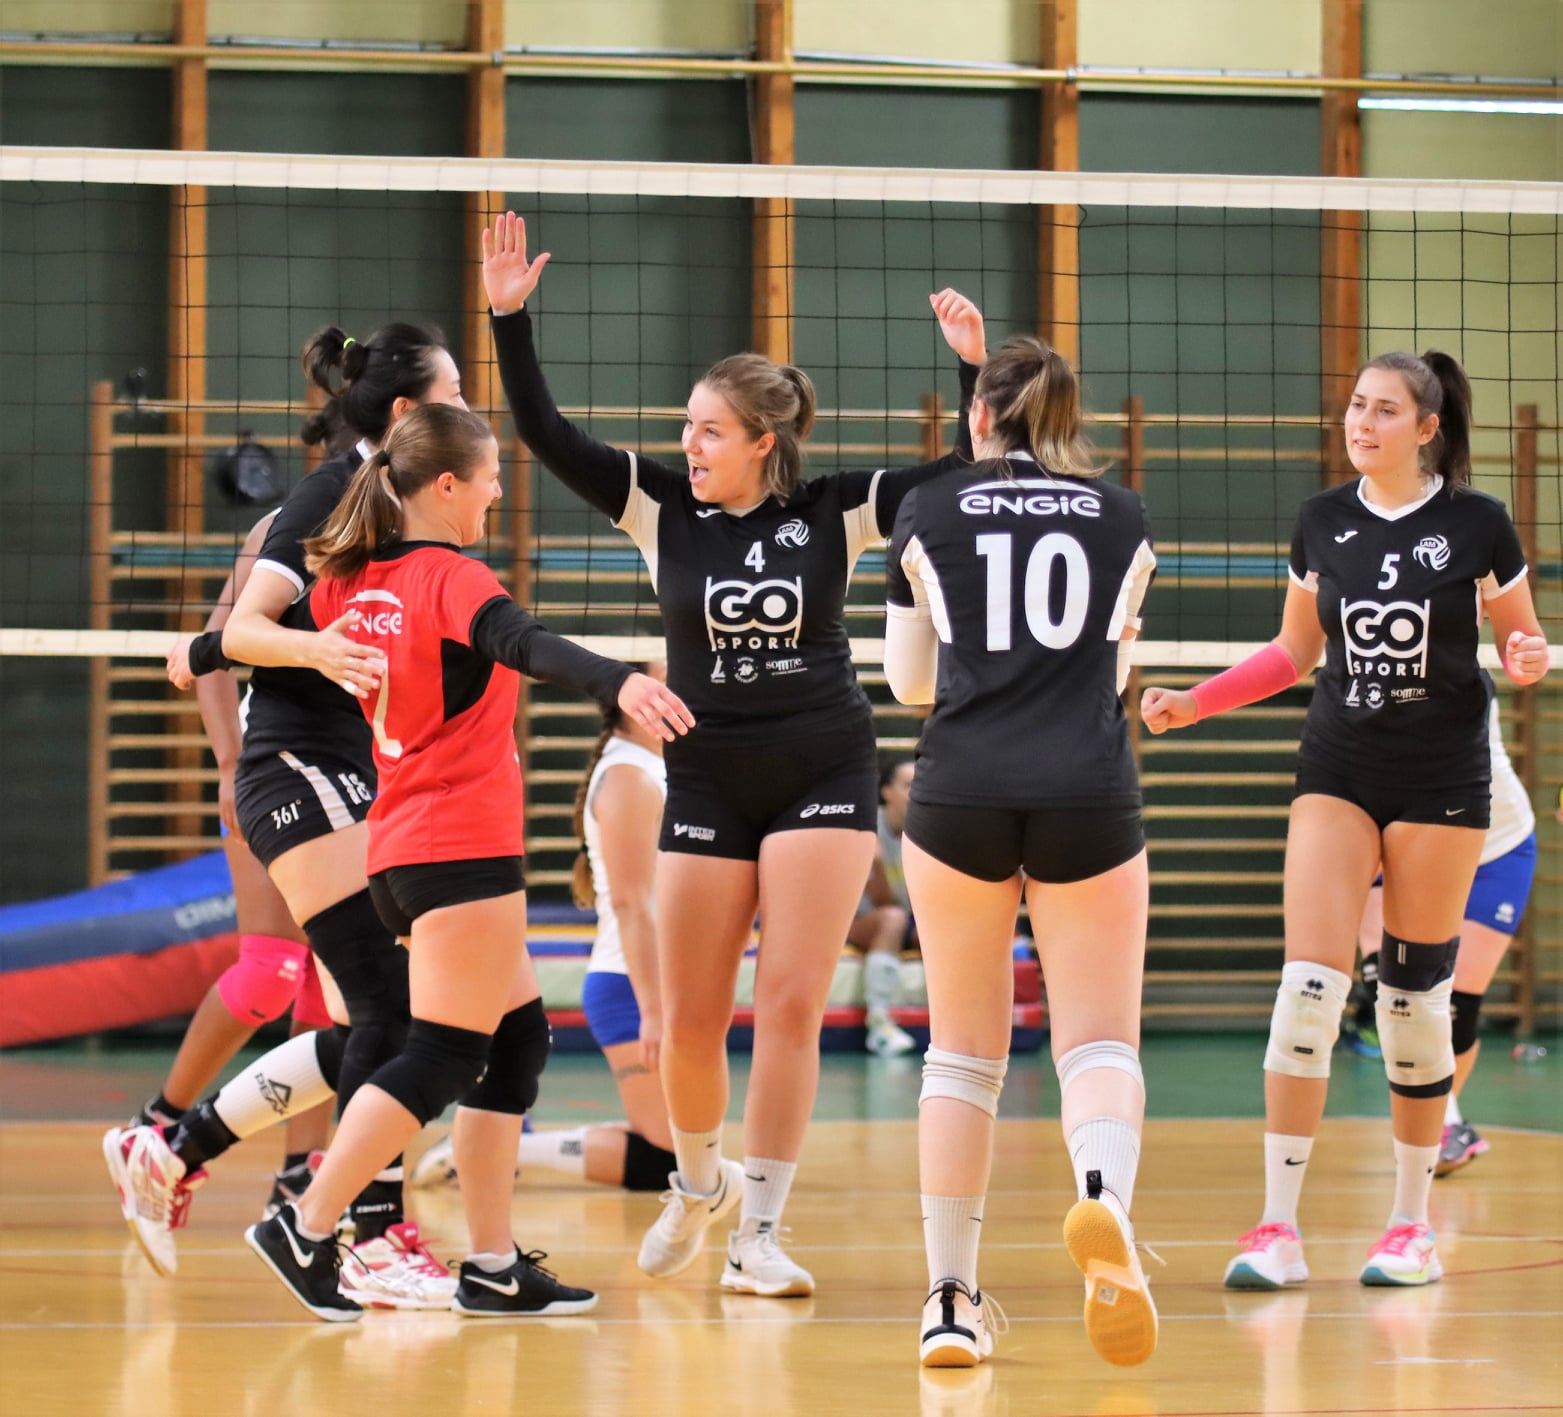 Volley Chaville 3